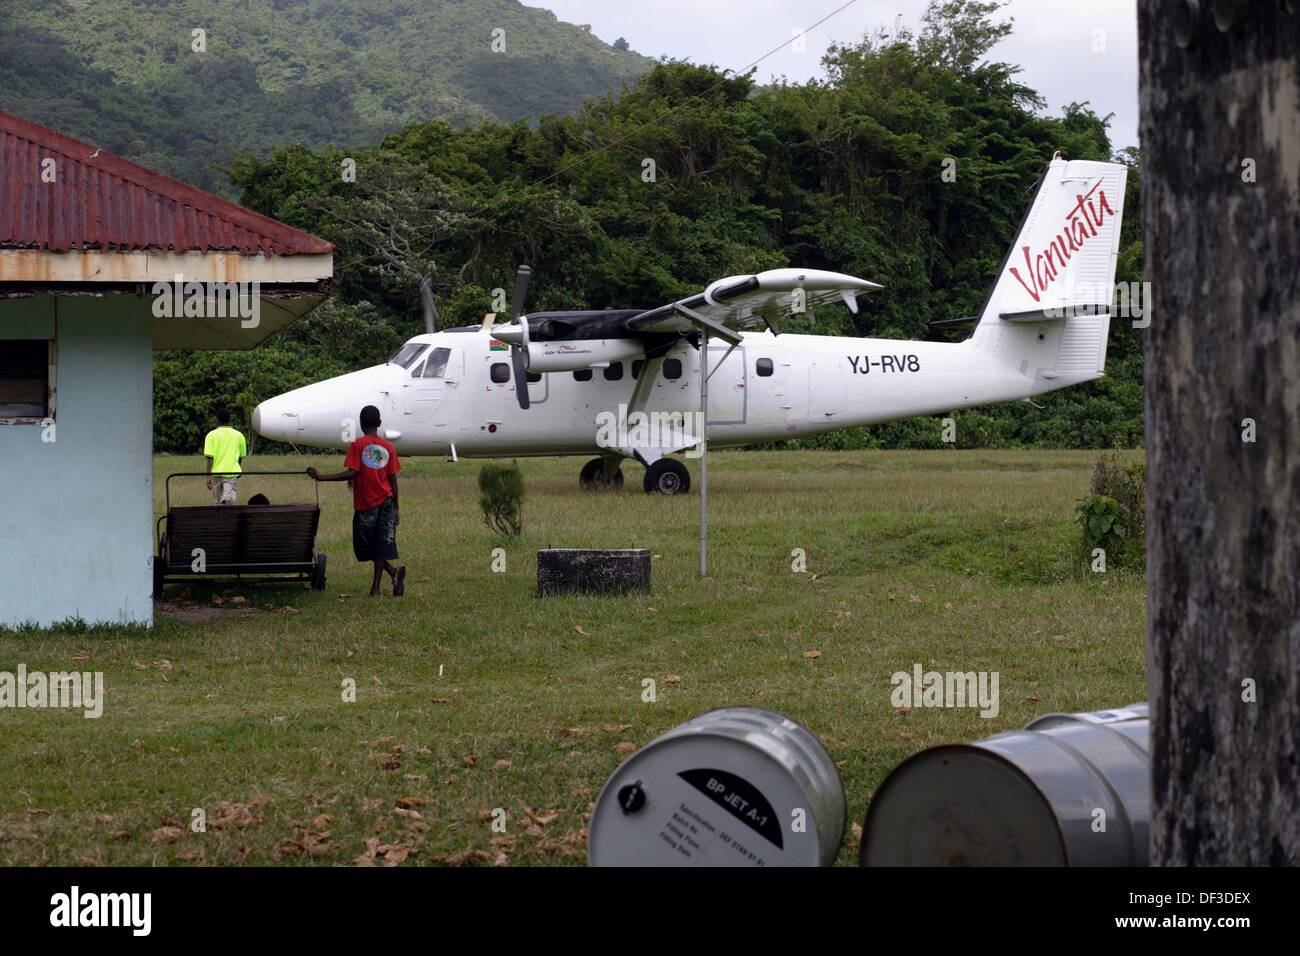 A Twin Otter turboprop aircraft standing on the grass tarmac of the airport of Sola with fuel barrels, people and the small - Stock Image